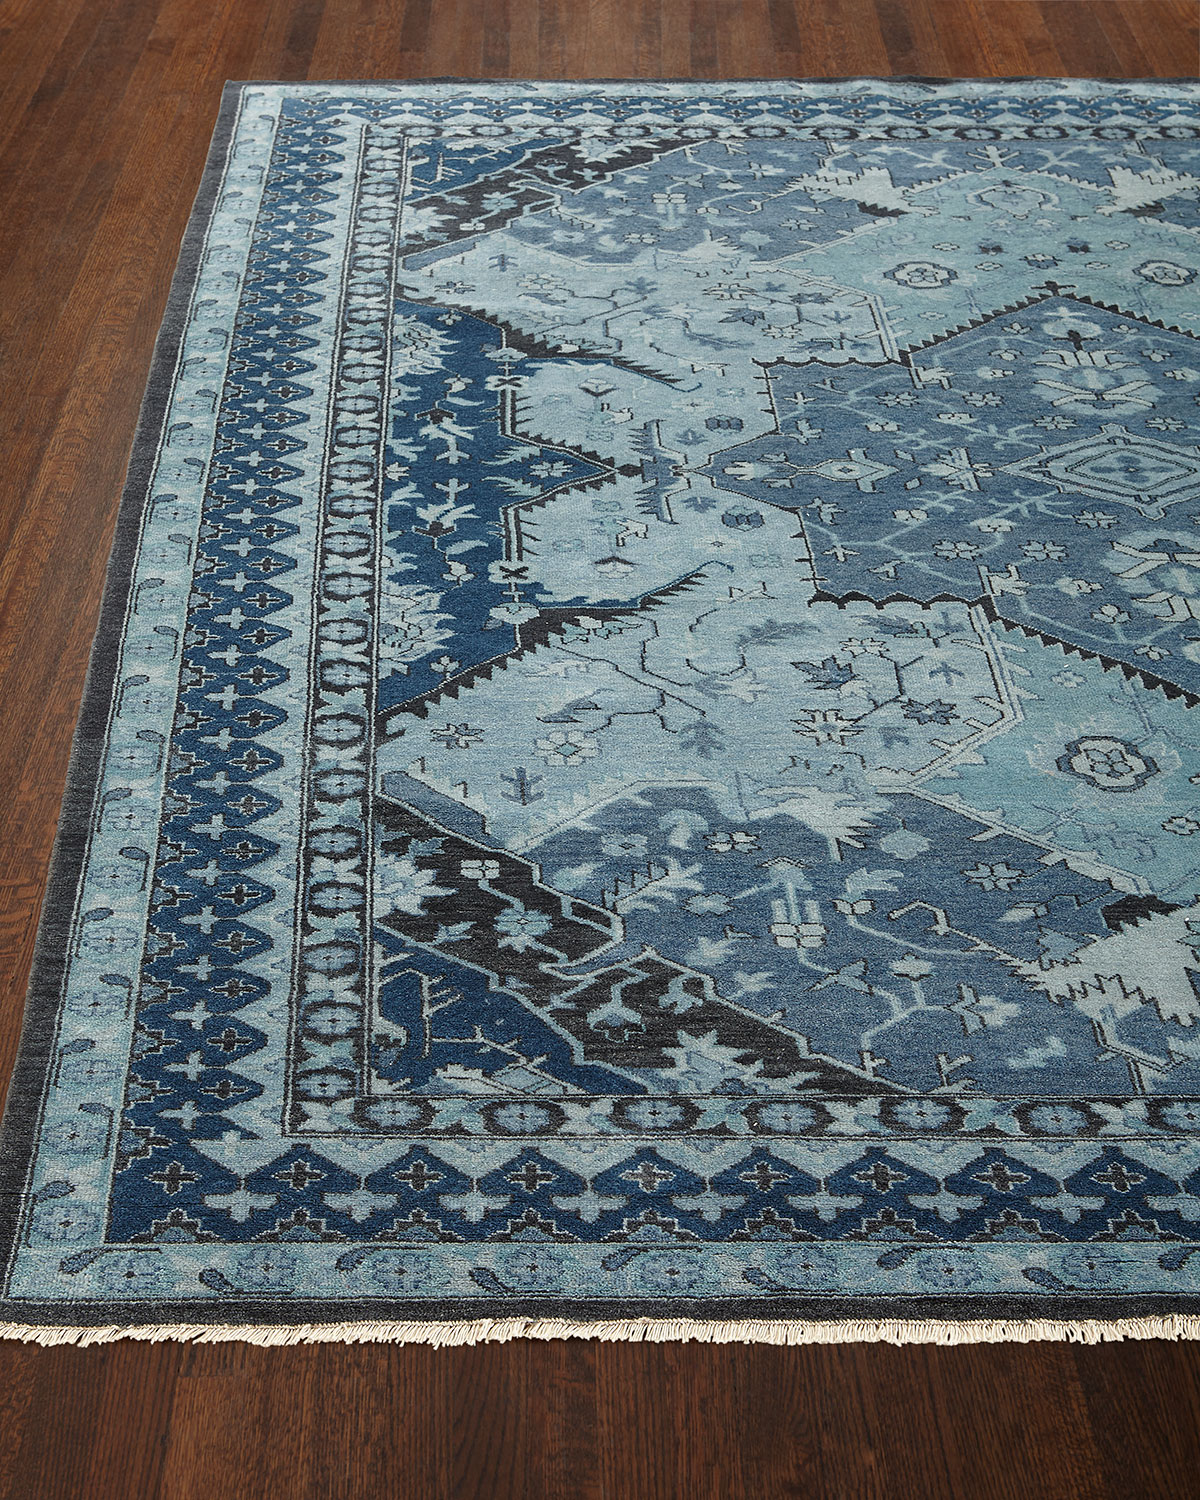 Ralph Lauren Home Reynolds Blue Rug, 9' x 12'